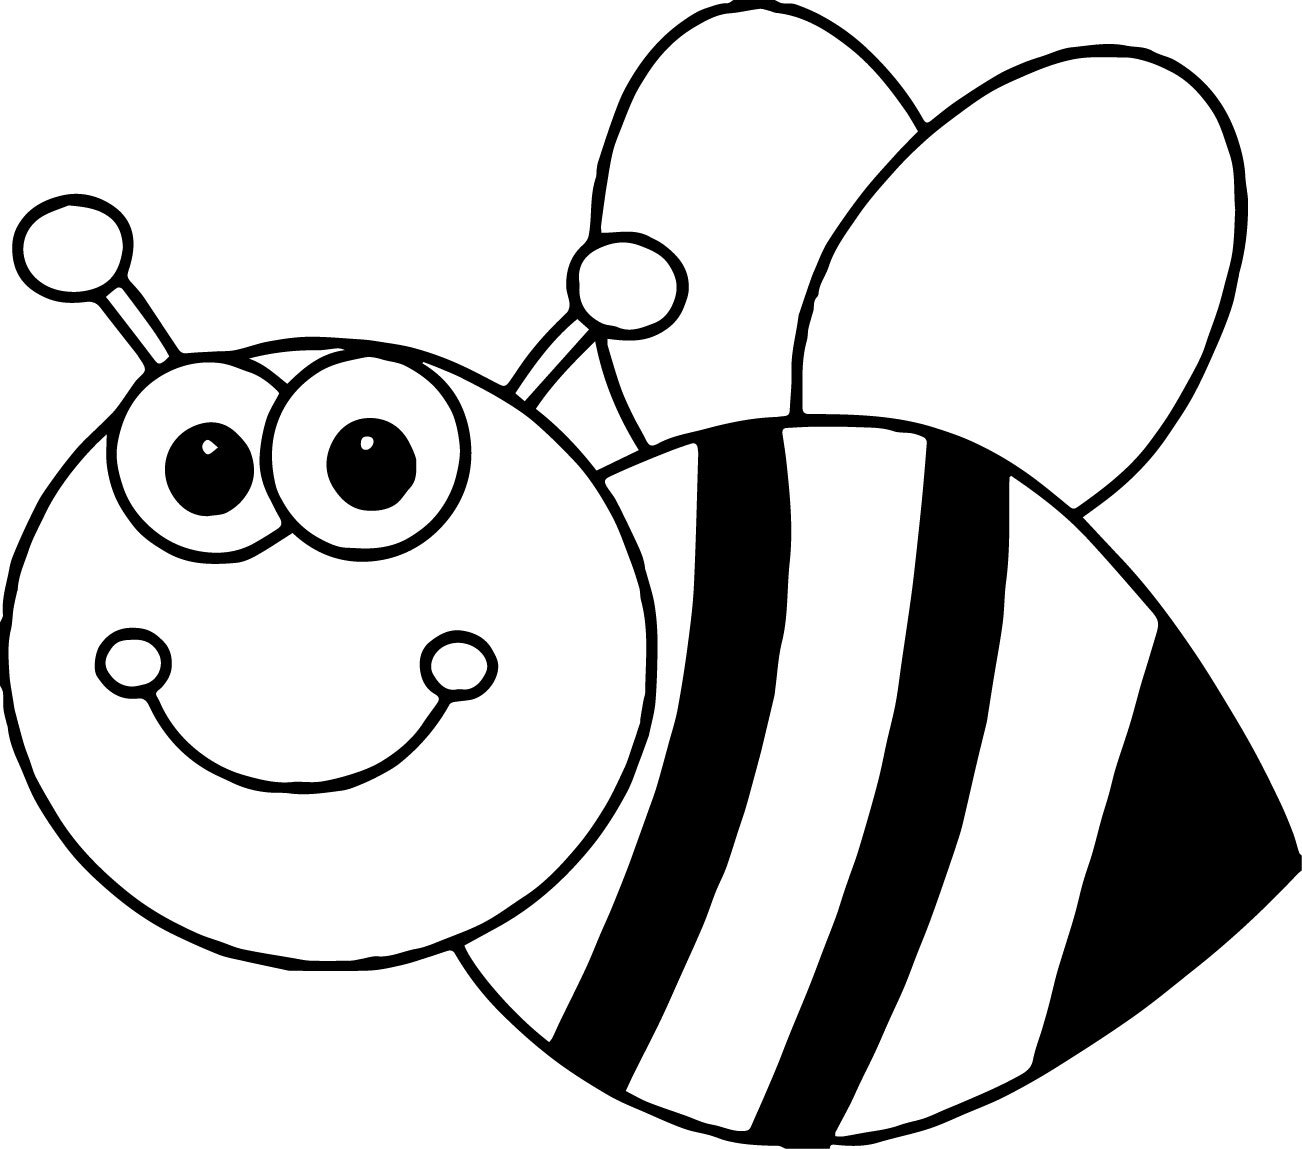 bee coloring pages for preschool - photo#21